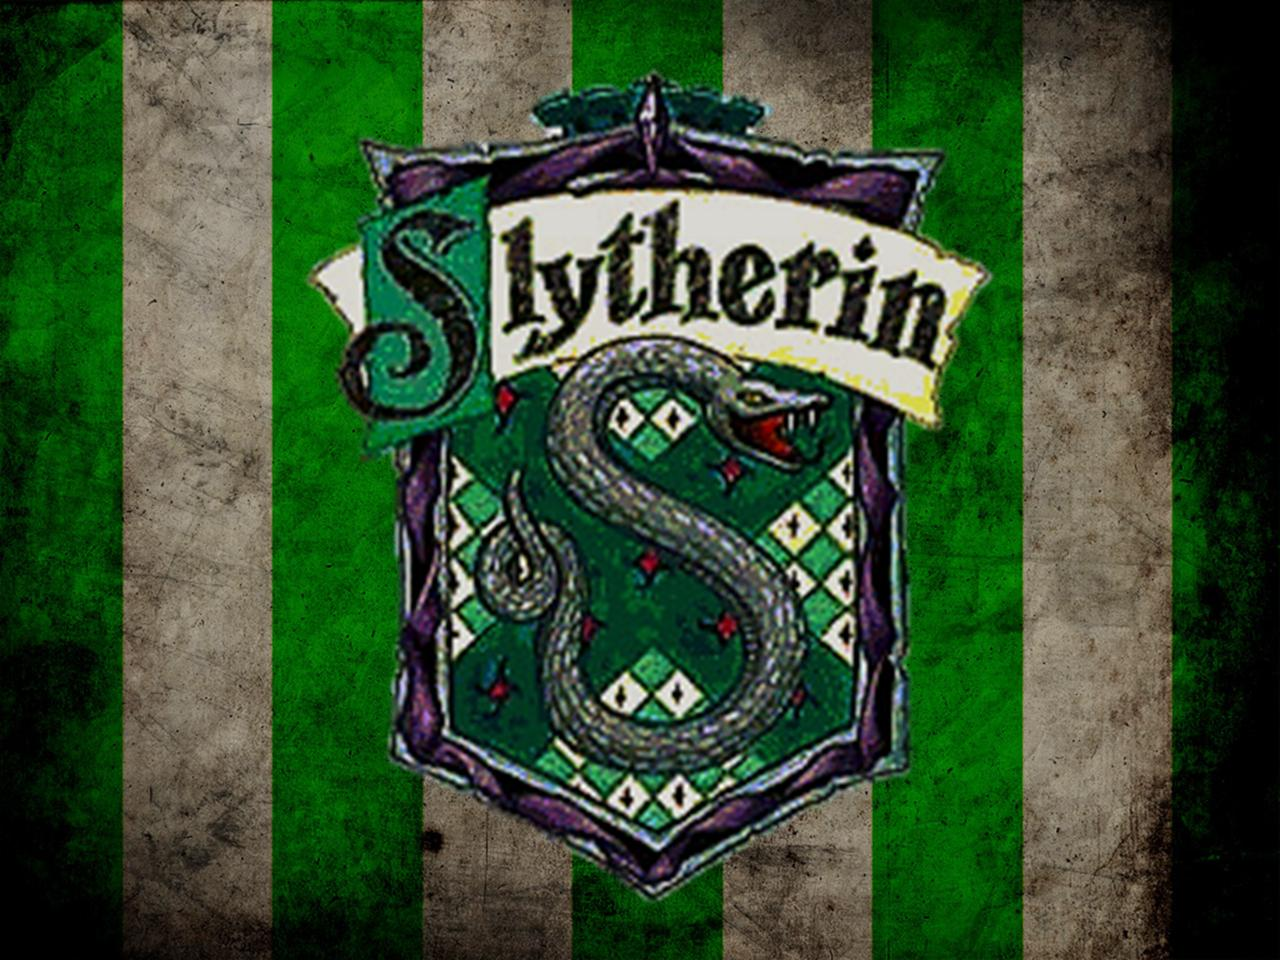 1280x960 Slytherin Wallpaper (29+ images) on Genchi.info